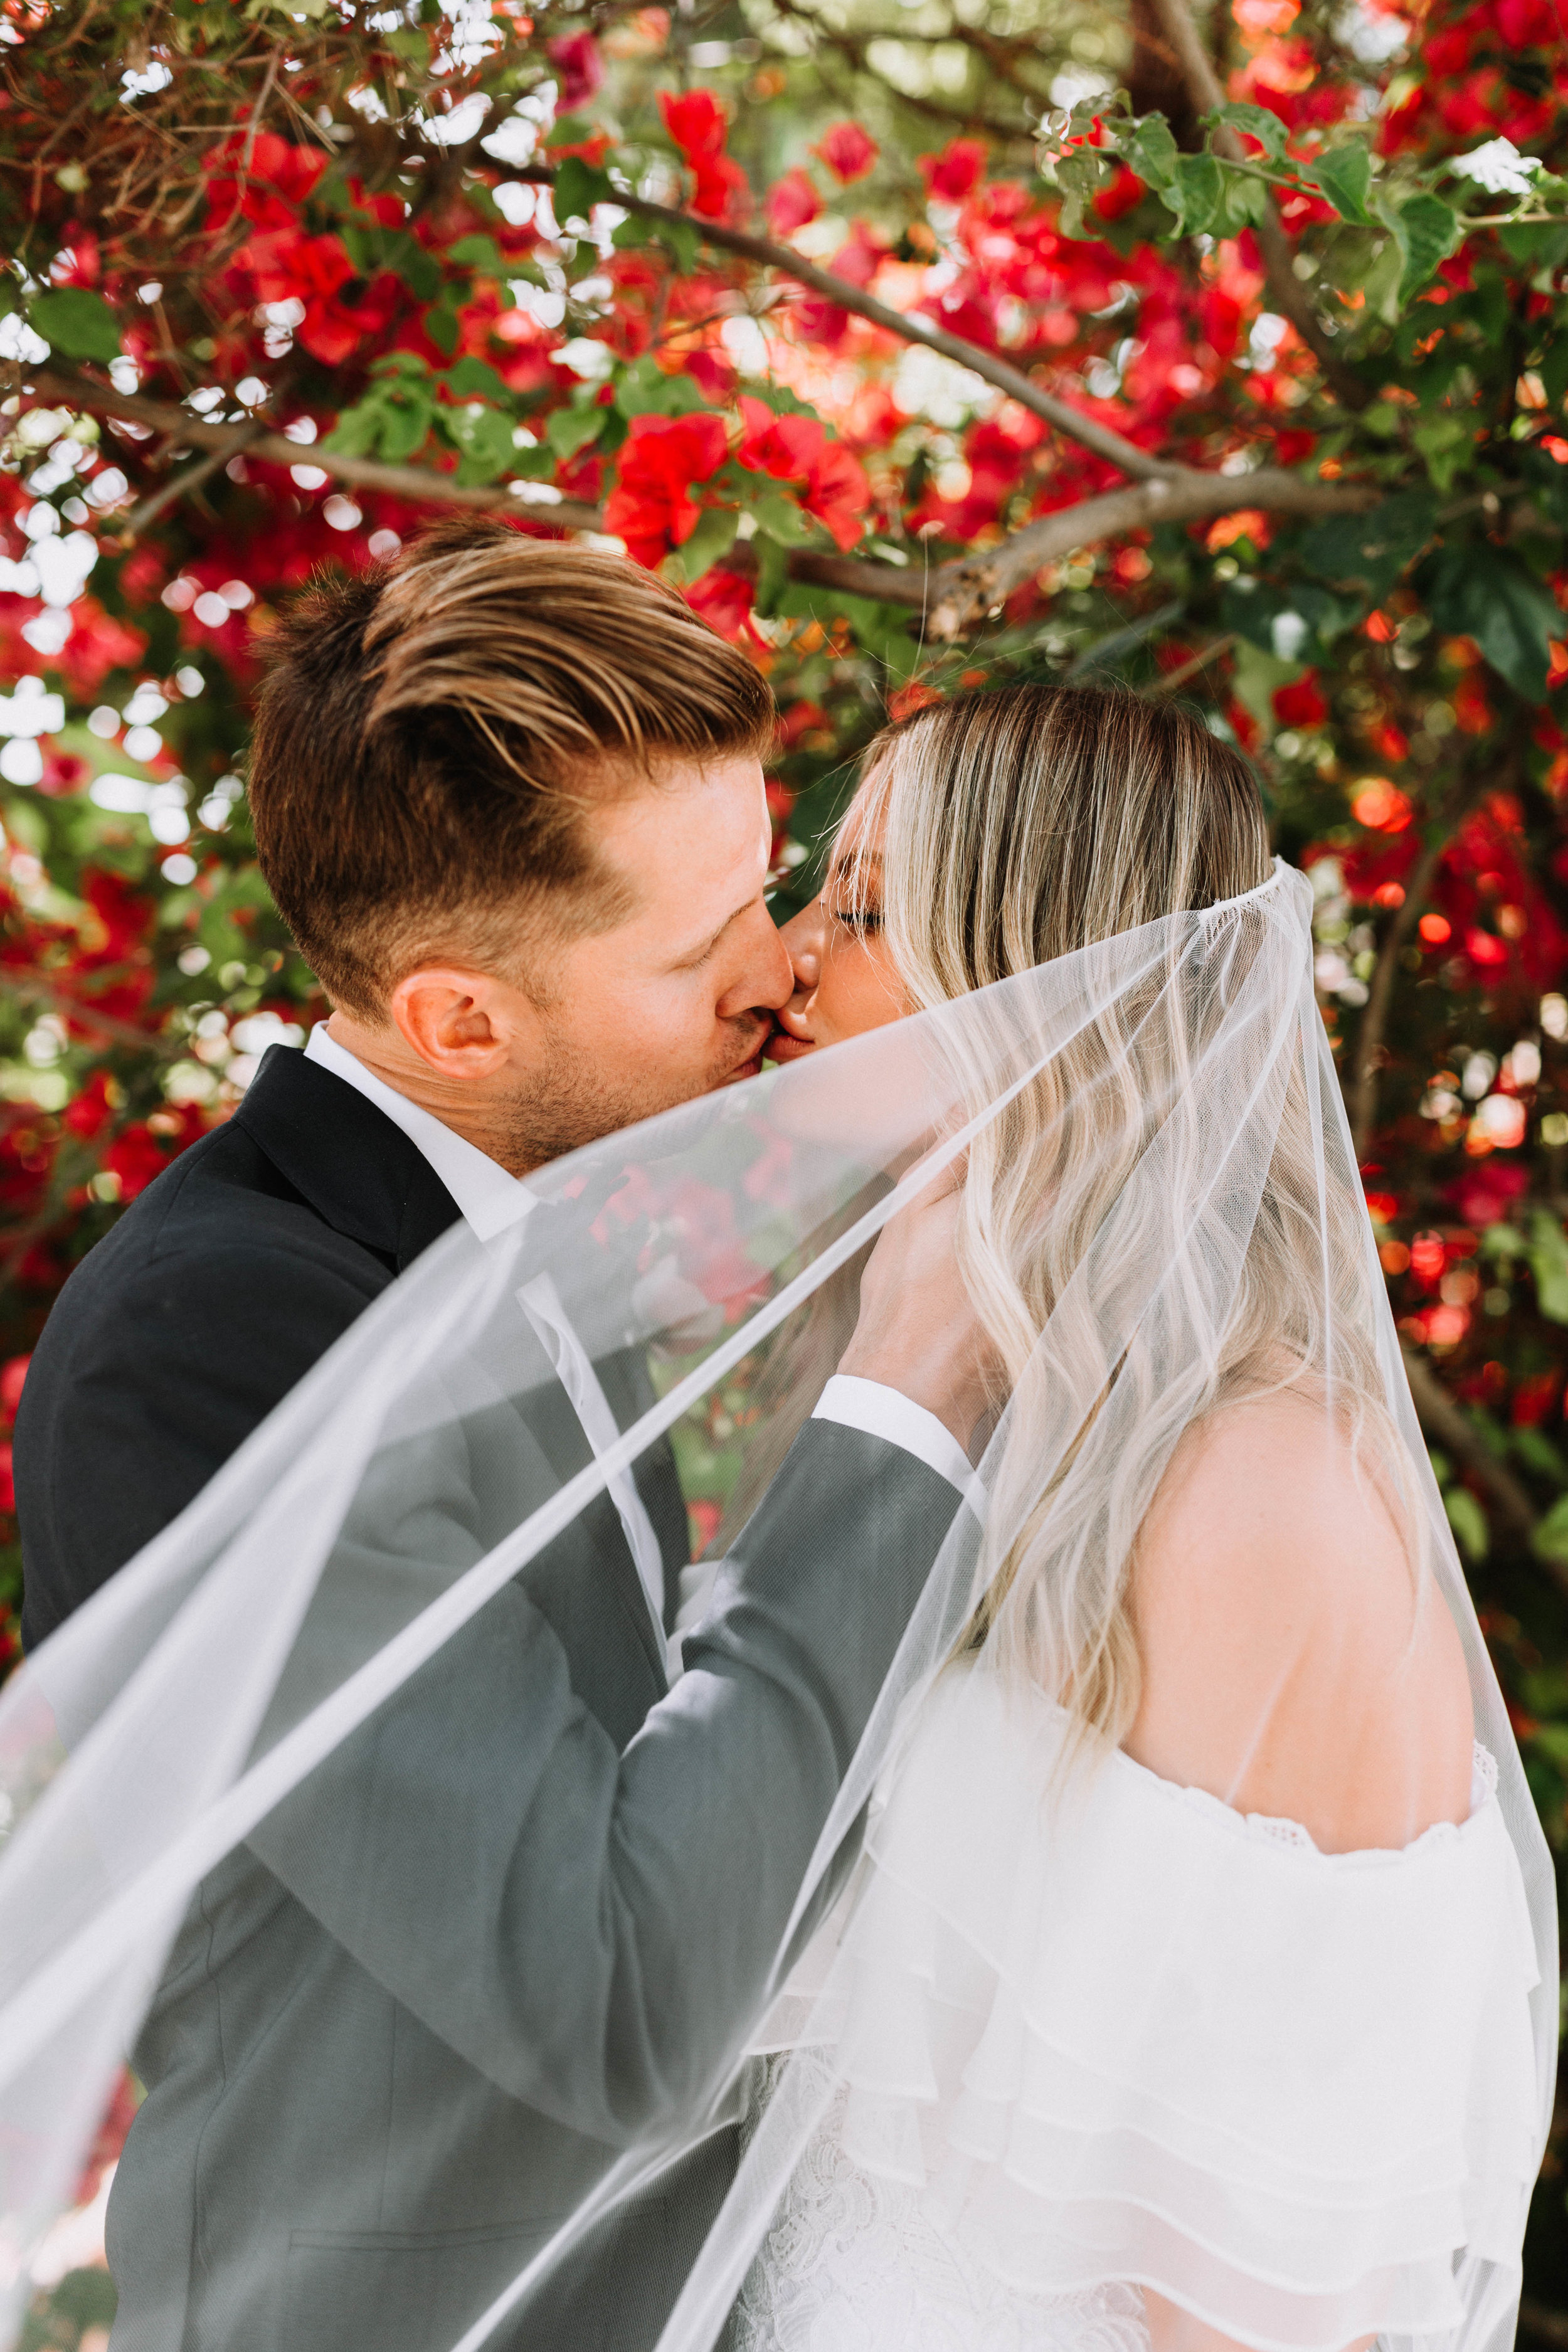 WEDDINGKATHERINE + JORDAN - The most beautiful backyard wedding, full of gorgeous details, from heirloom persian rugs, custom wedding gowns, purple bread, and a sparkler grand entrance to dragonfly pendants and Parasols